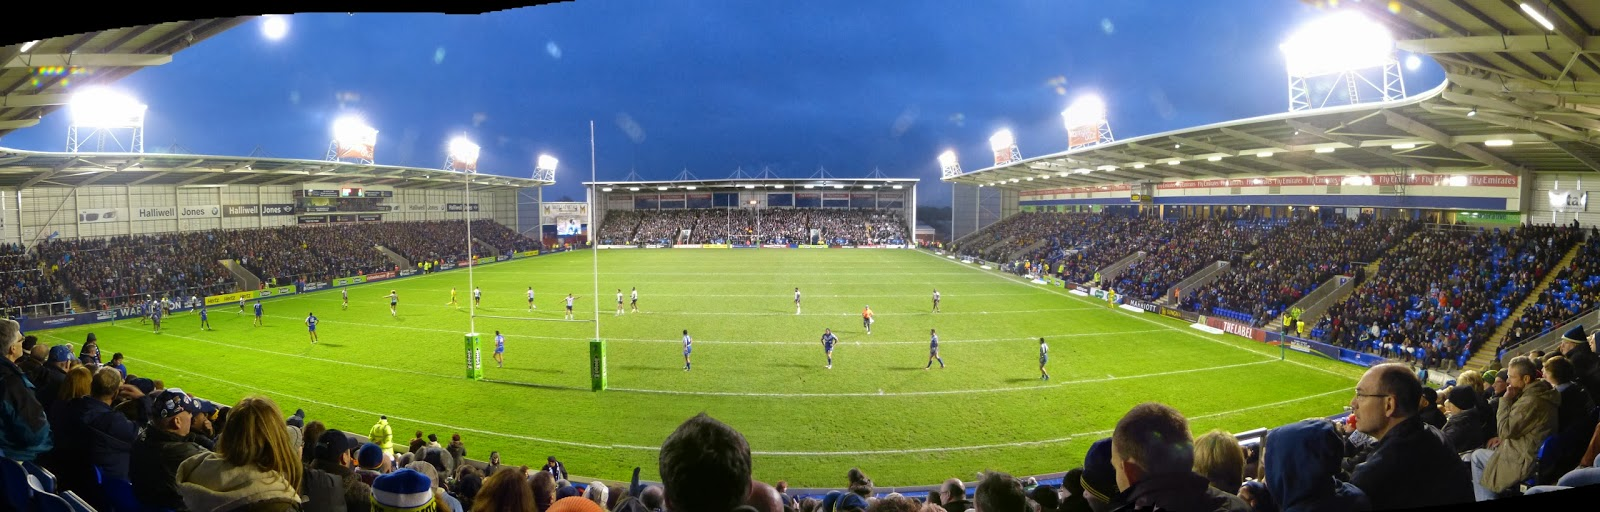 Le Halliwell Jones Stadium